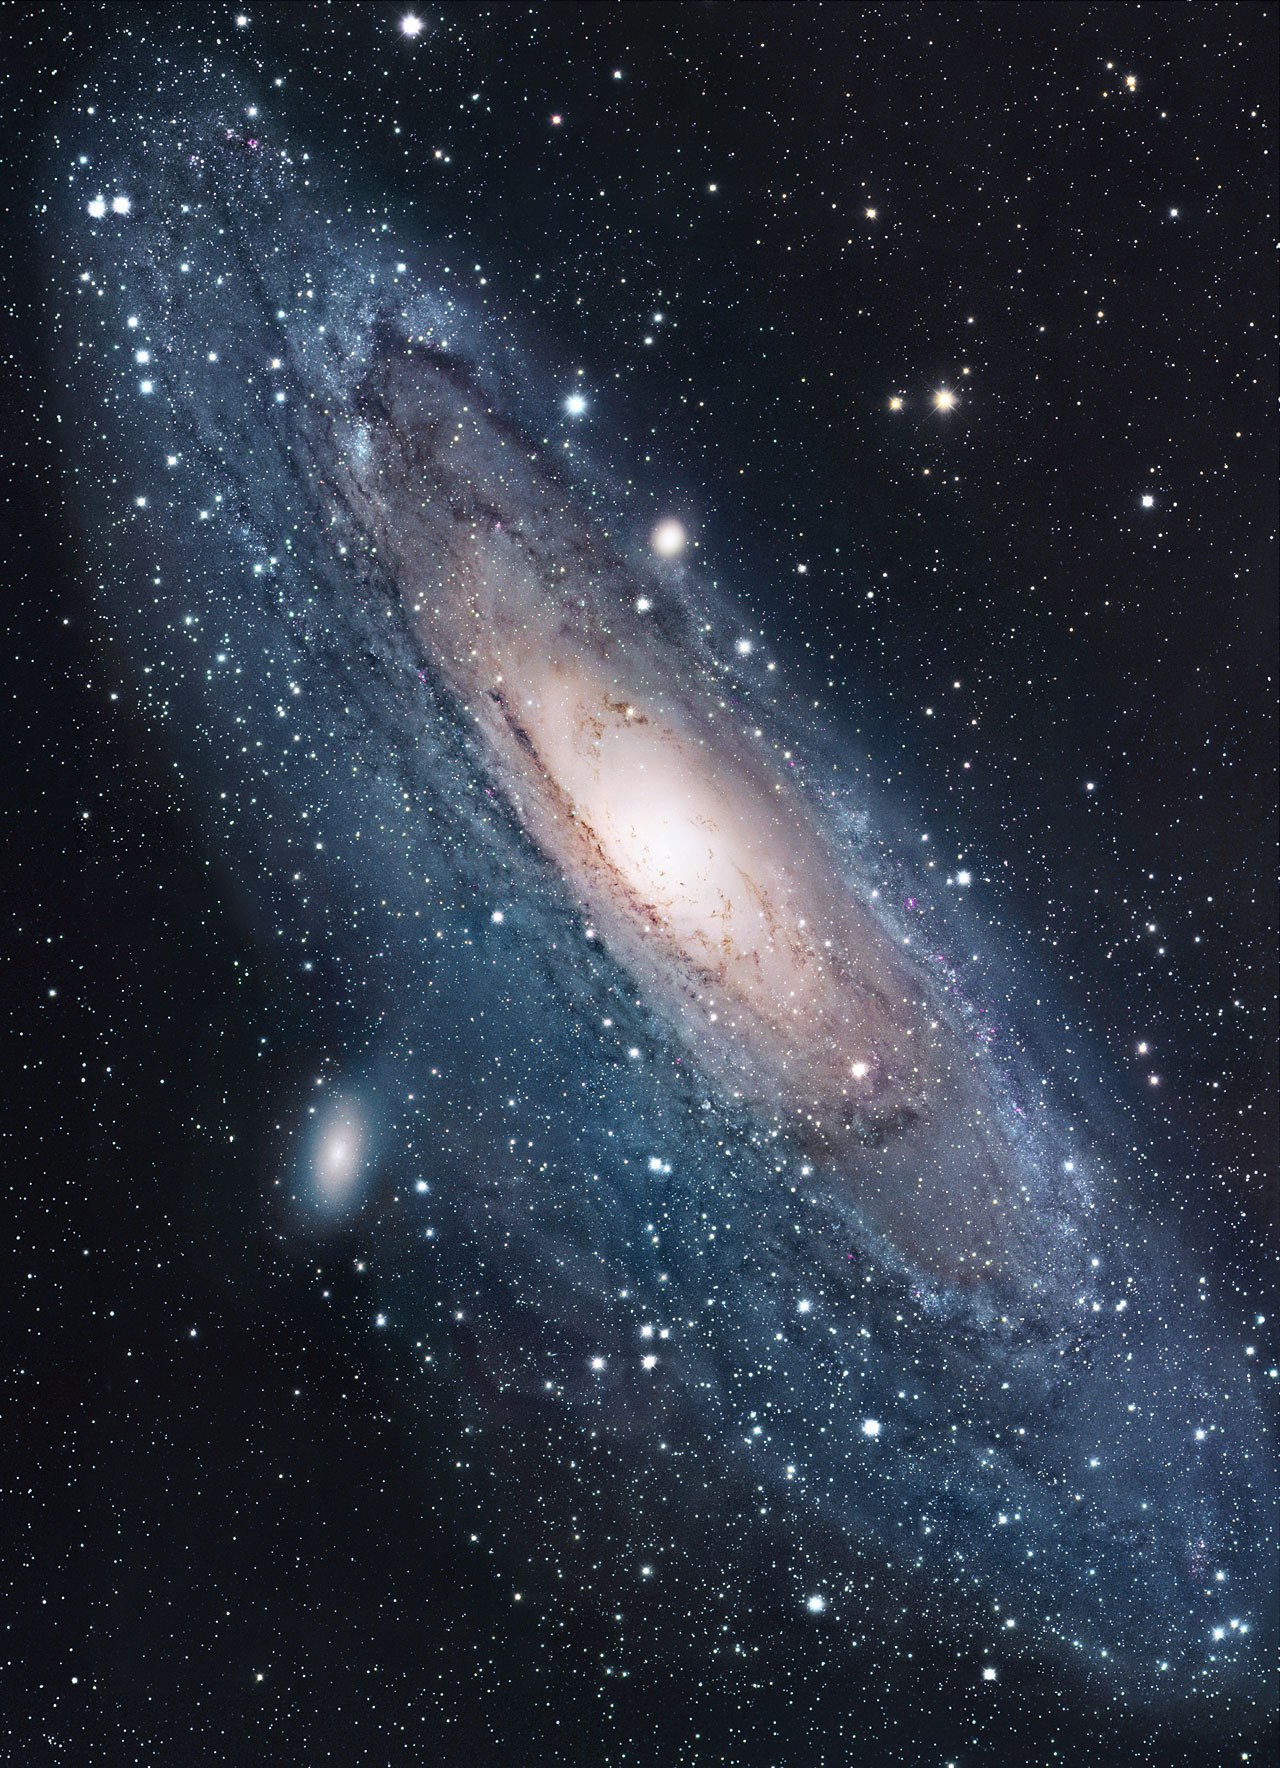 Andromeda Galaxy (M31) wide-field image | ESA/Hubble